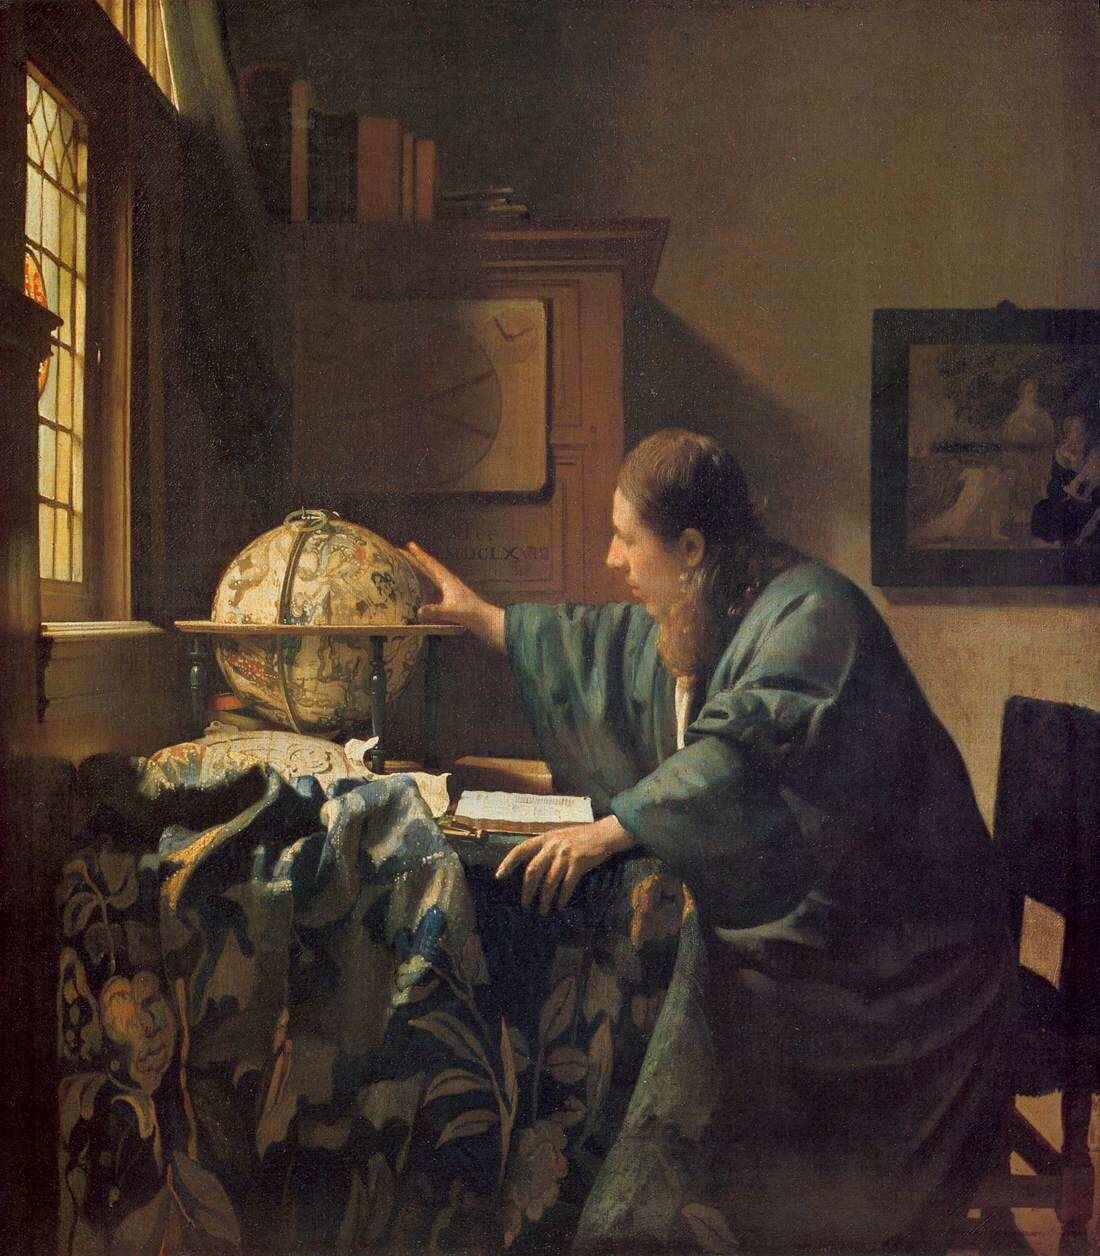 Johannes Vermeer, The Astronomer, ca. 1668. Via Wikimedia Commons.